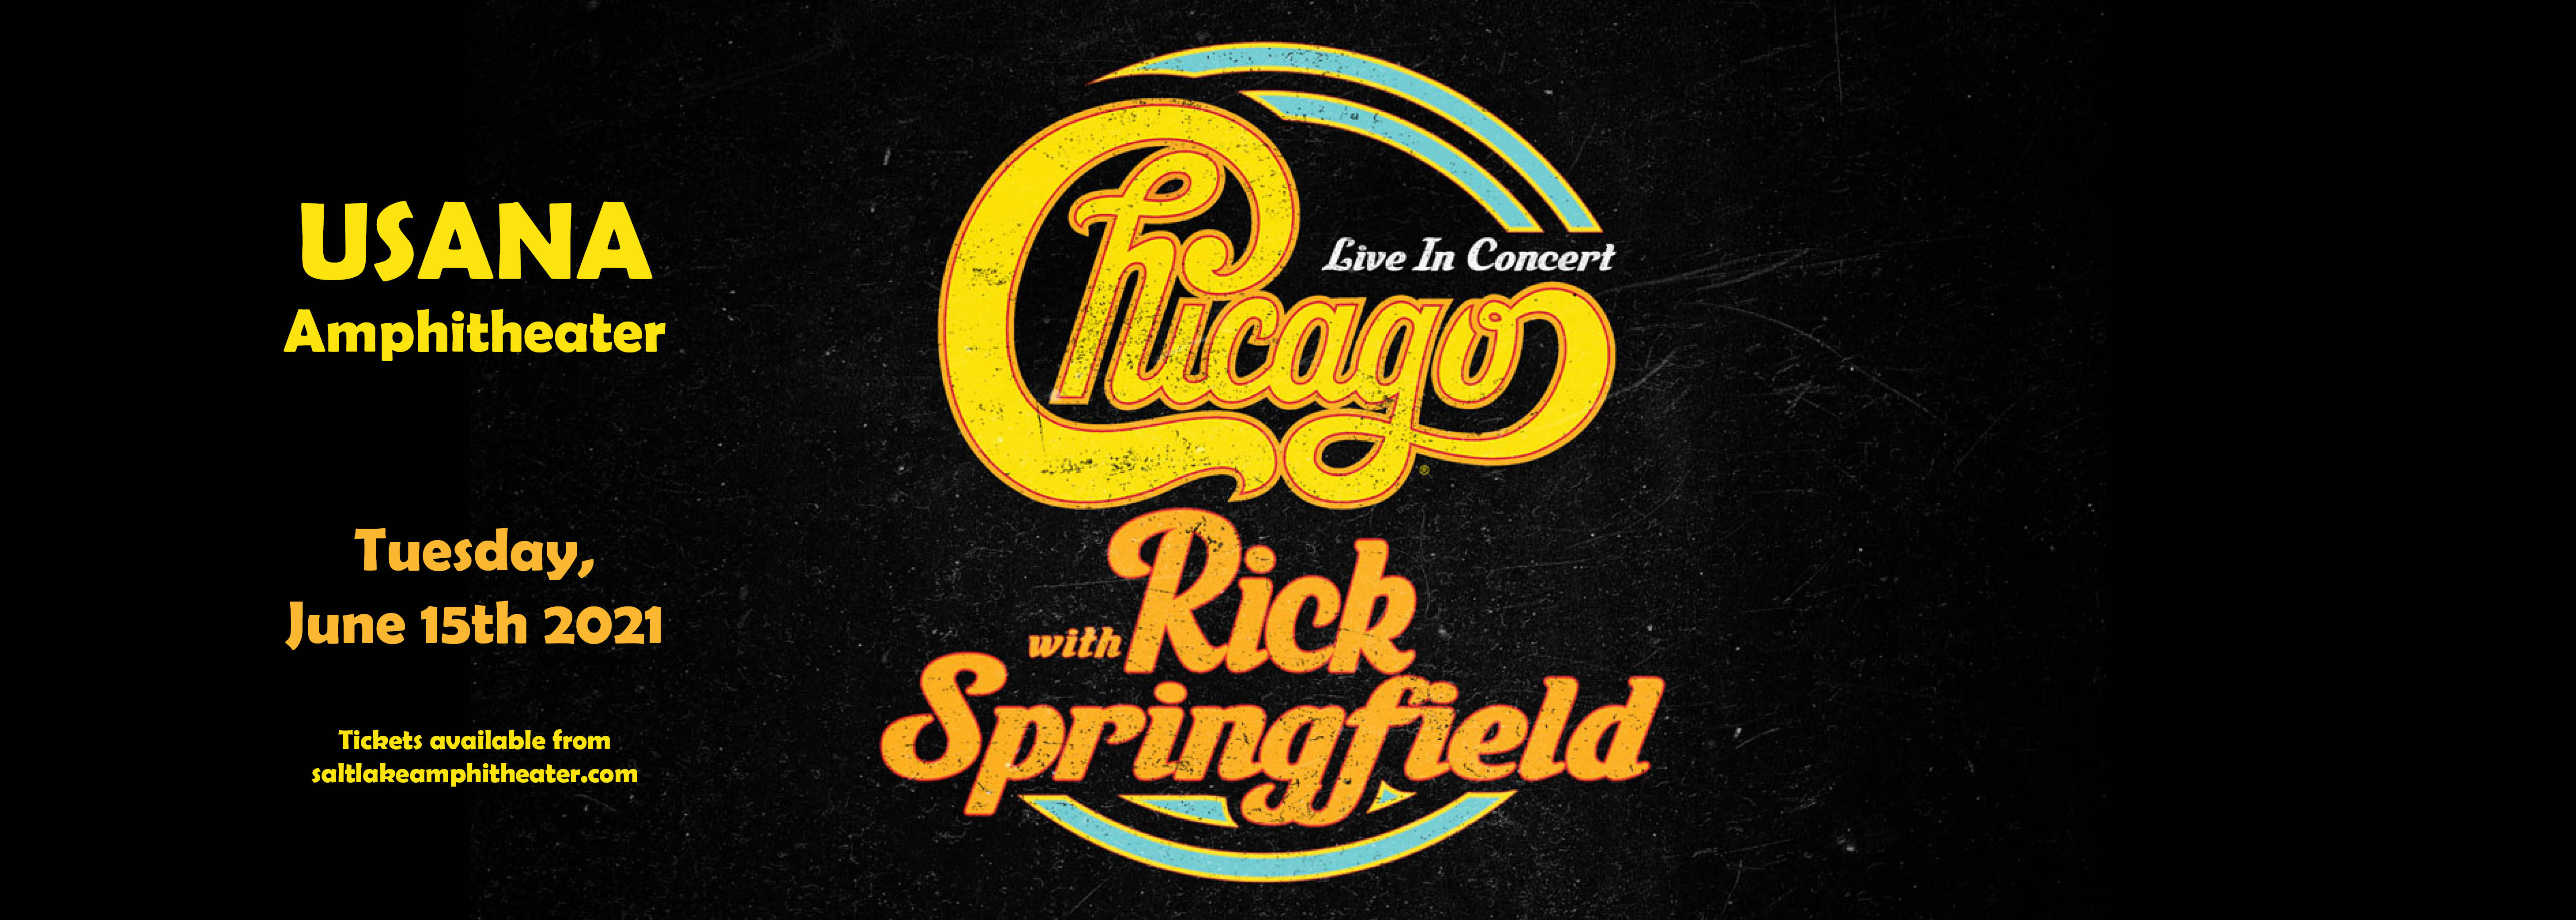 Chicago - The Band & Rick Springfield [CANCELLED] at USANA Amphitheater